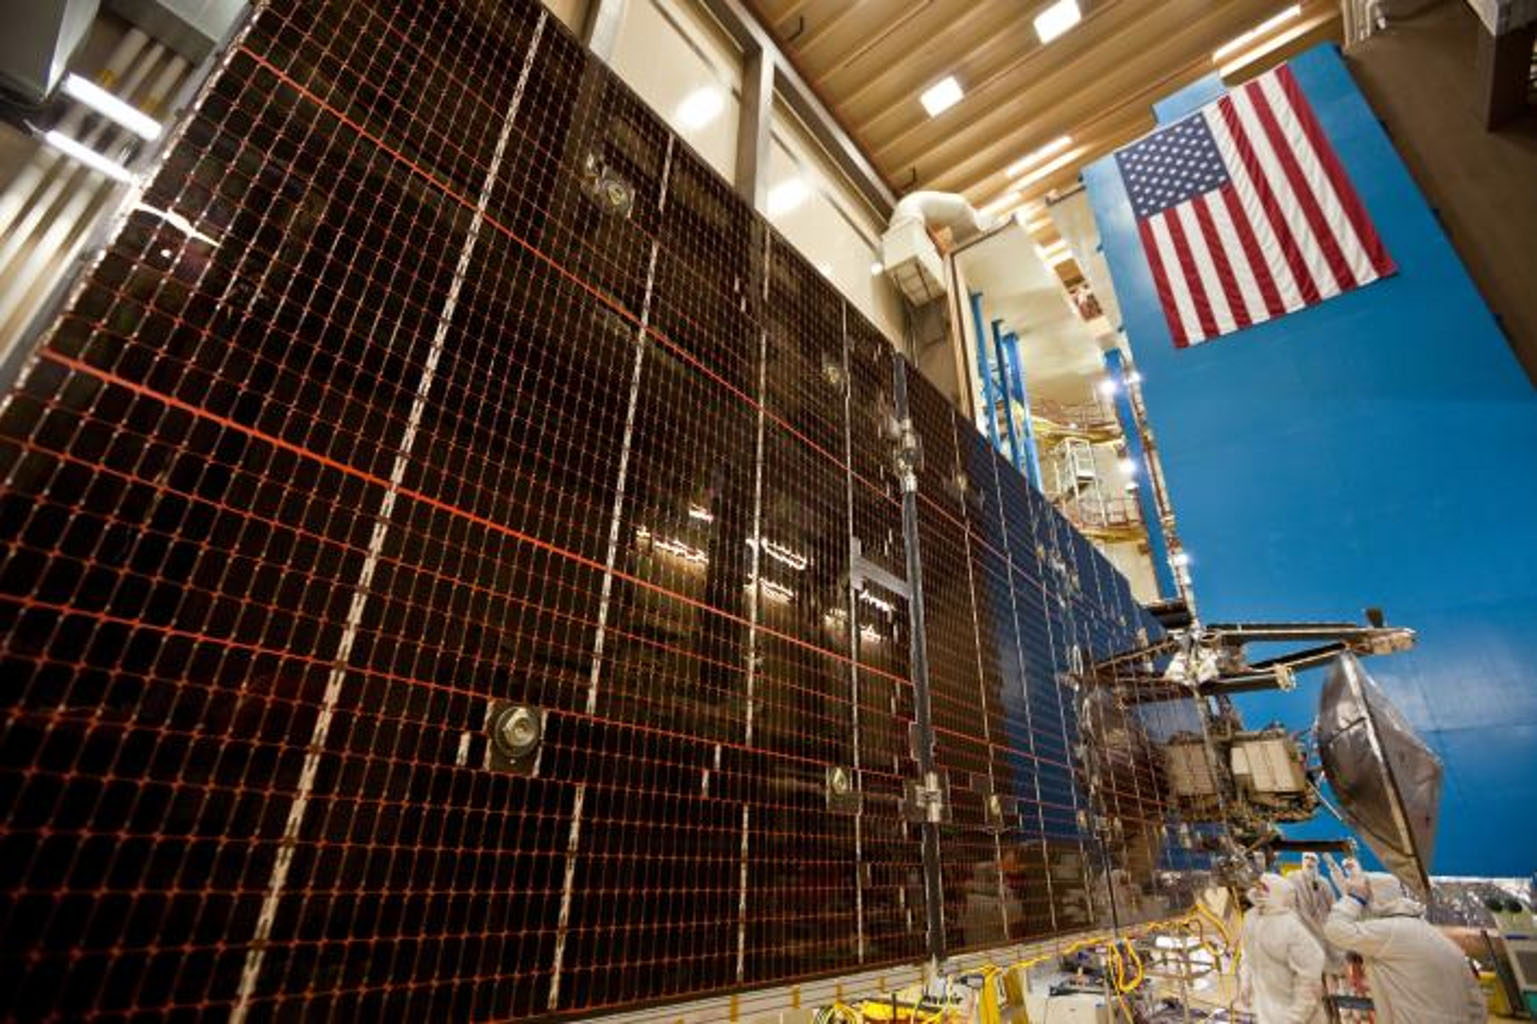 Technicians test the deployment of one of the three massive solar arrays that power NASA's Juno spacecraft.